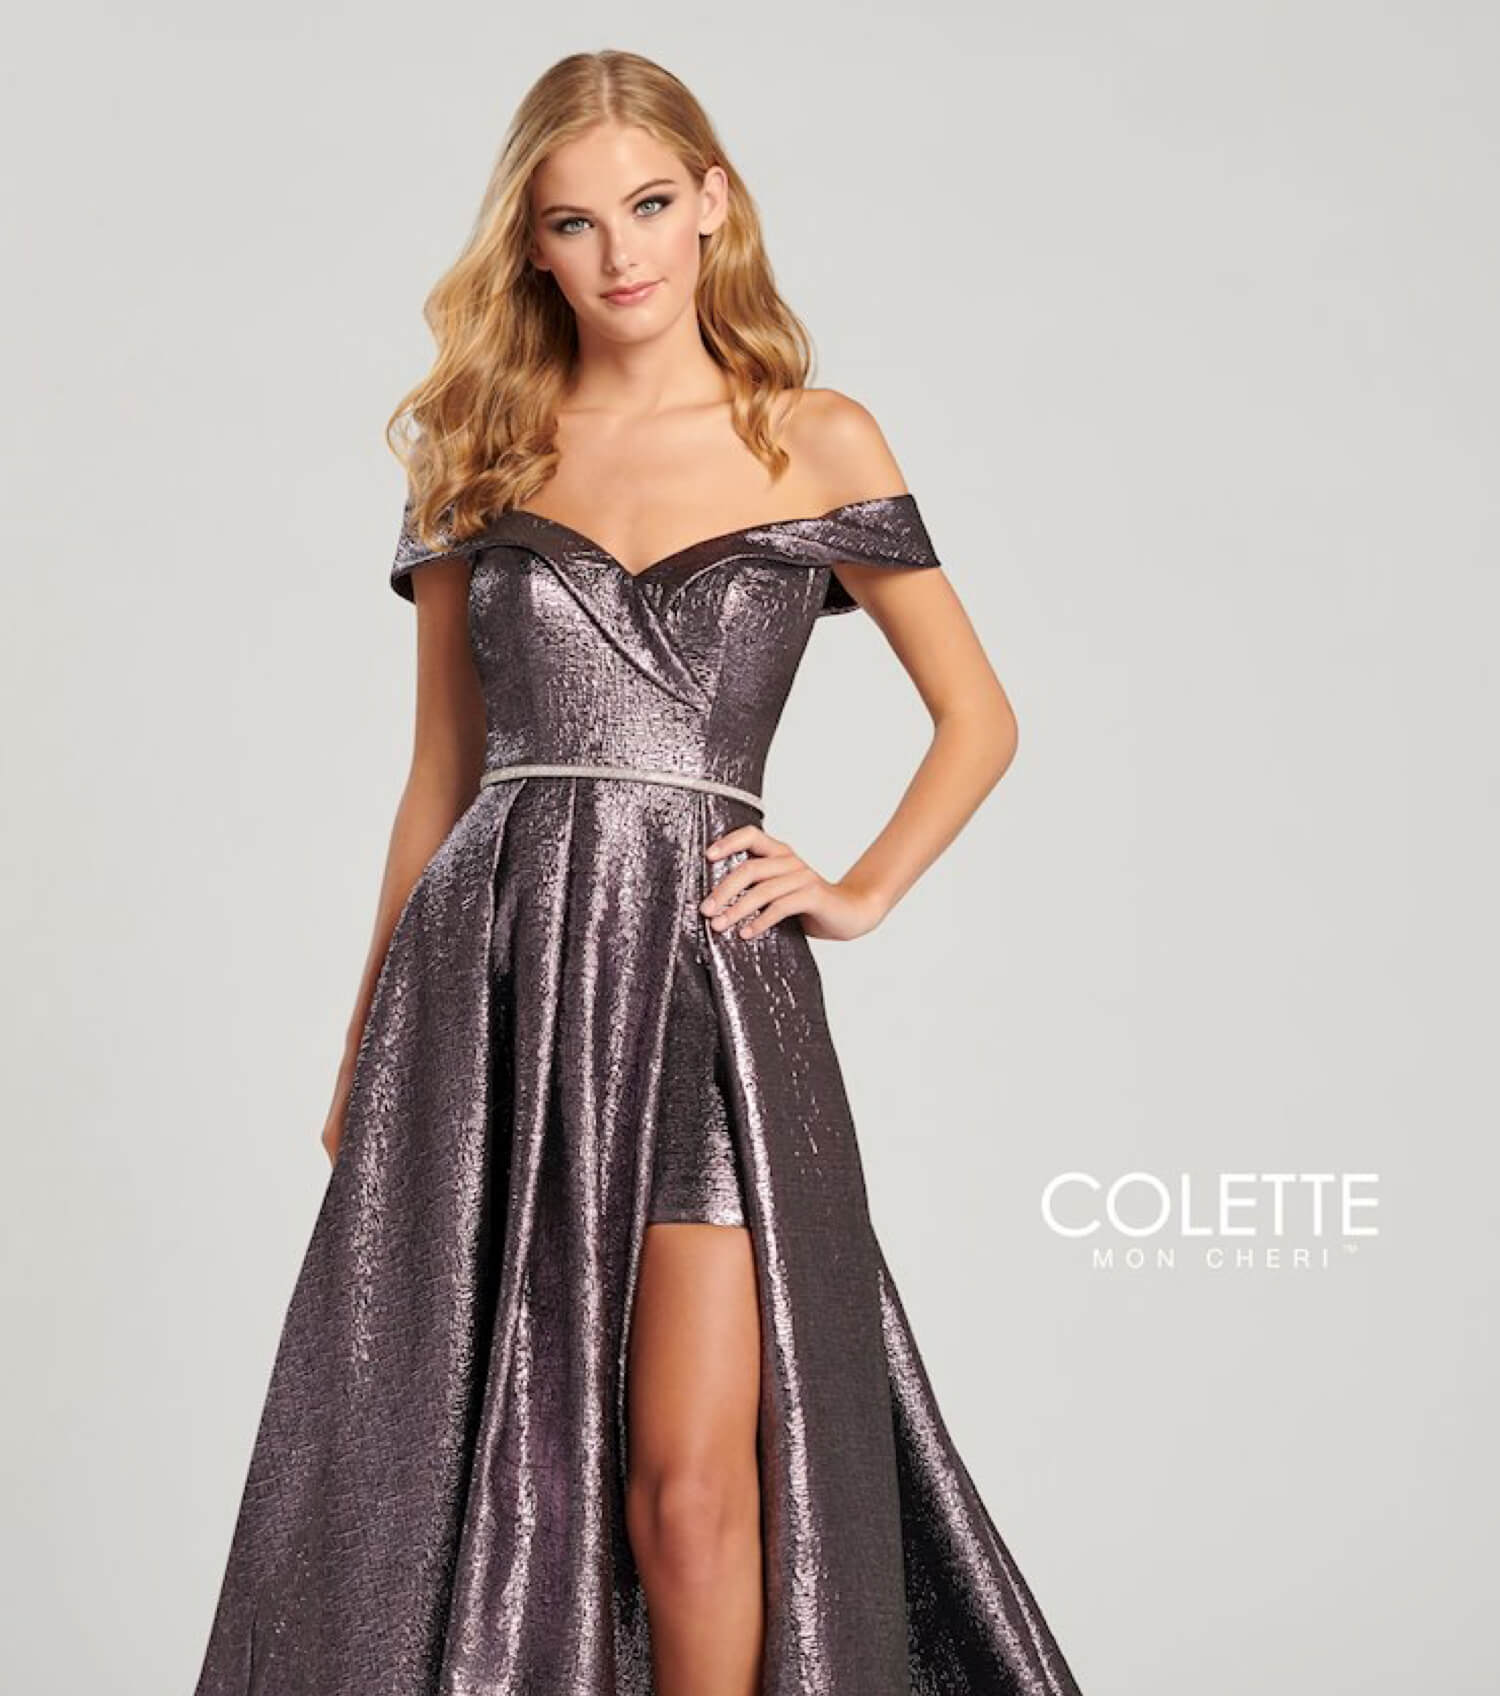 Blonde model wearing a sparkling Colette dress